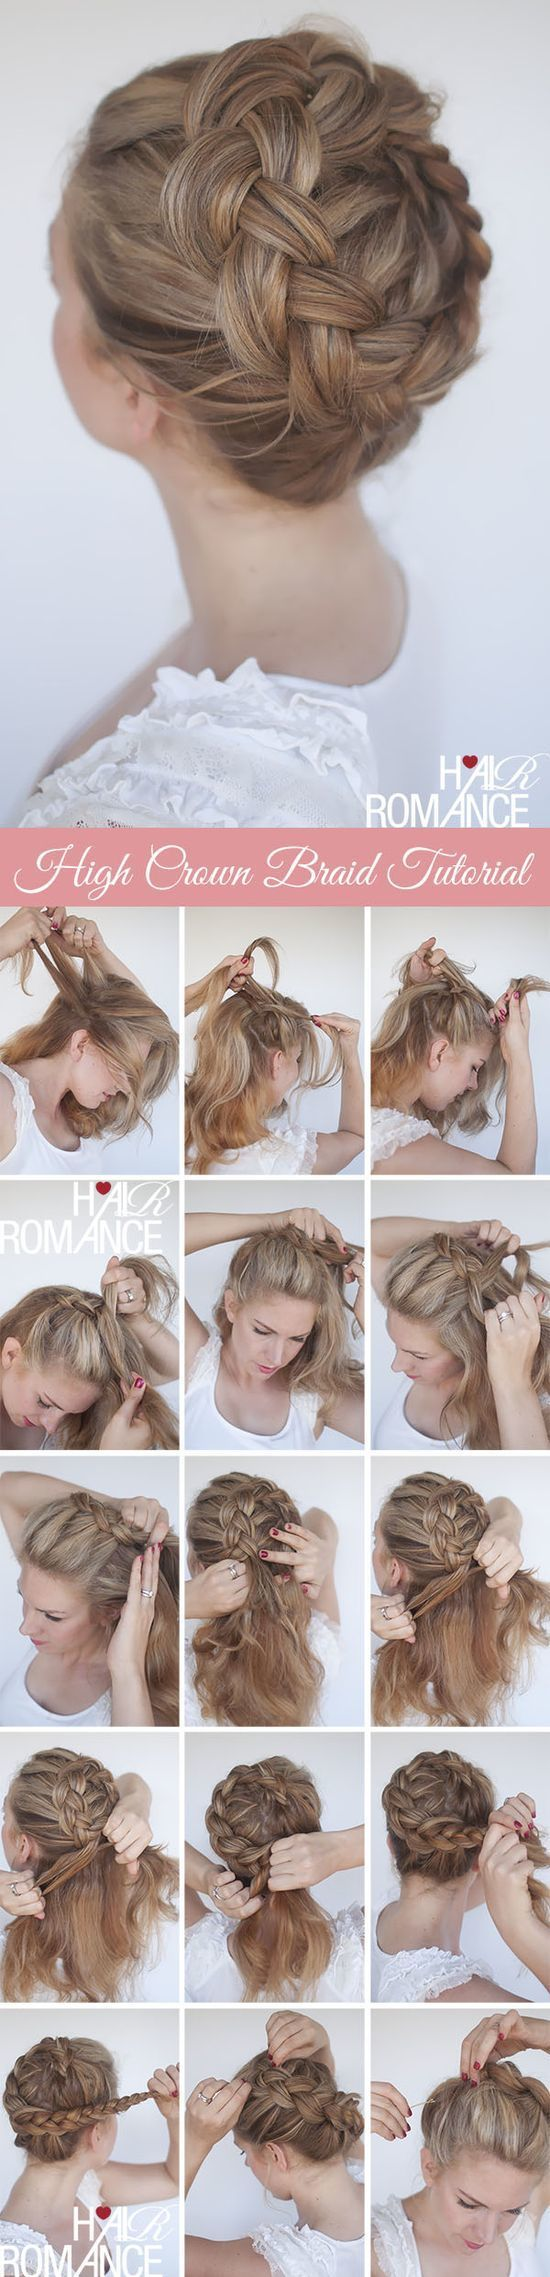 This is an easy up-do that will WOW your friends while staying cool! Perfect for BBQ's, Evening parties and special occasions. Try it out!!!